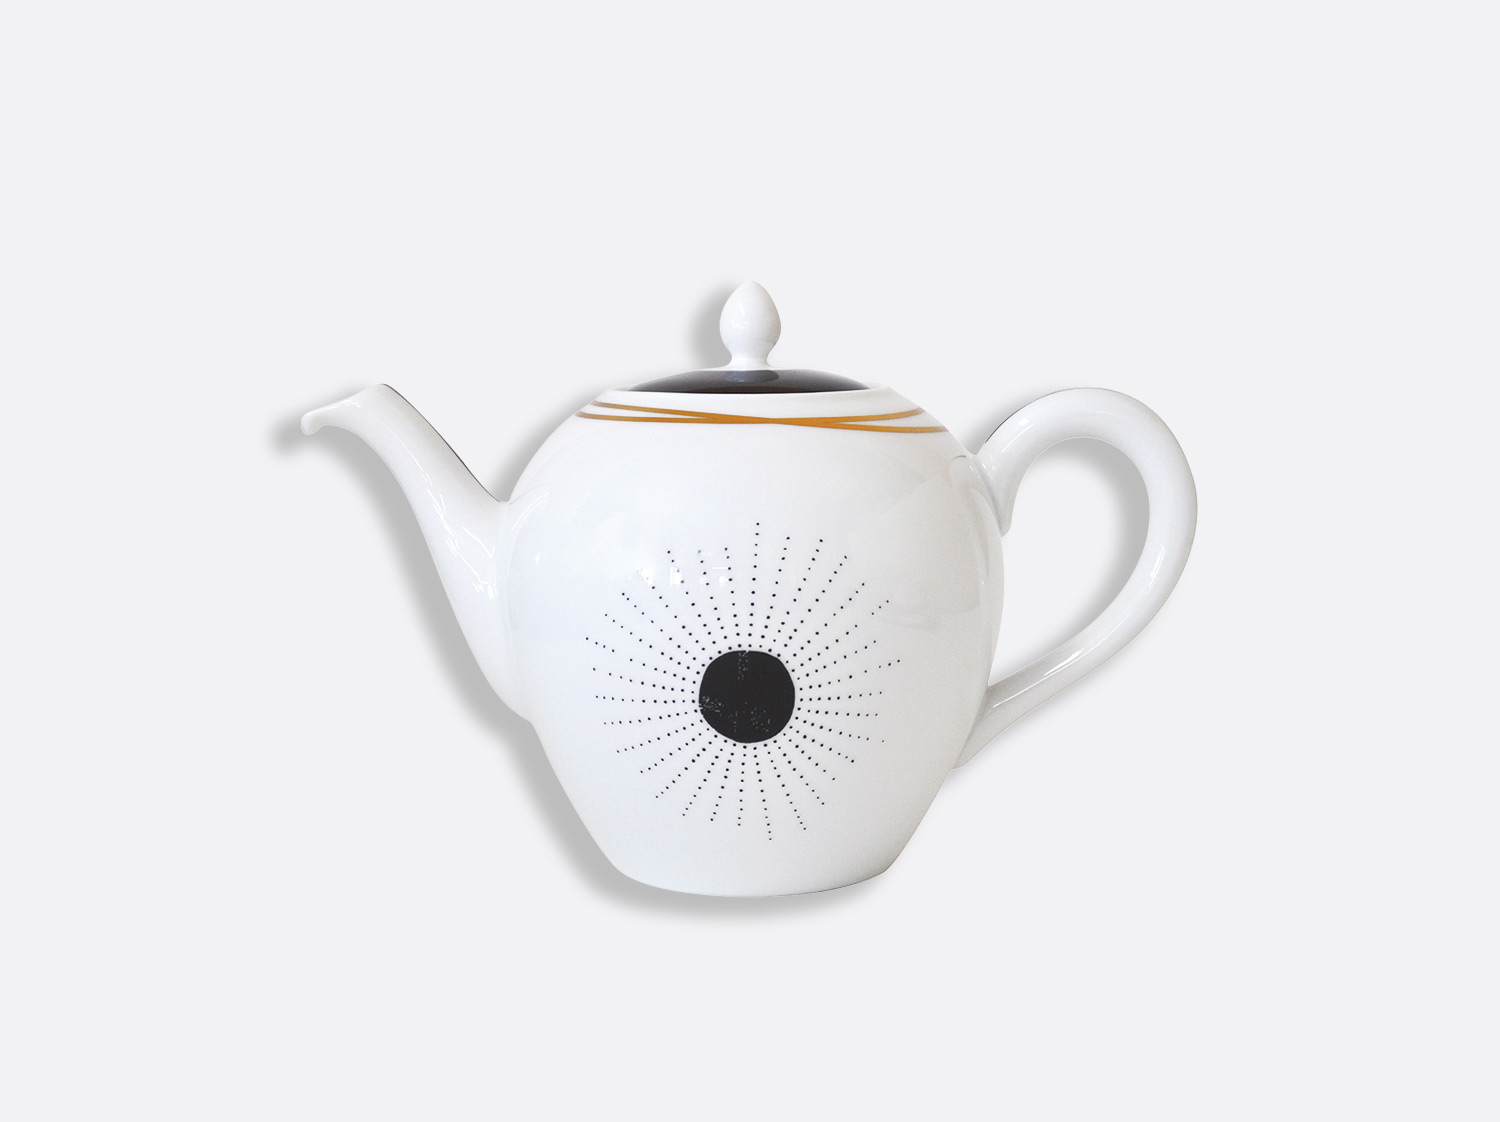 China Teapot 12 cups of the collection Aboro | Bernardaud